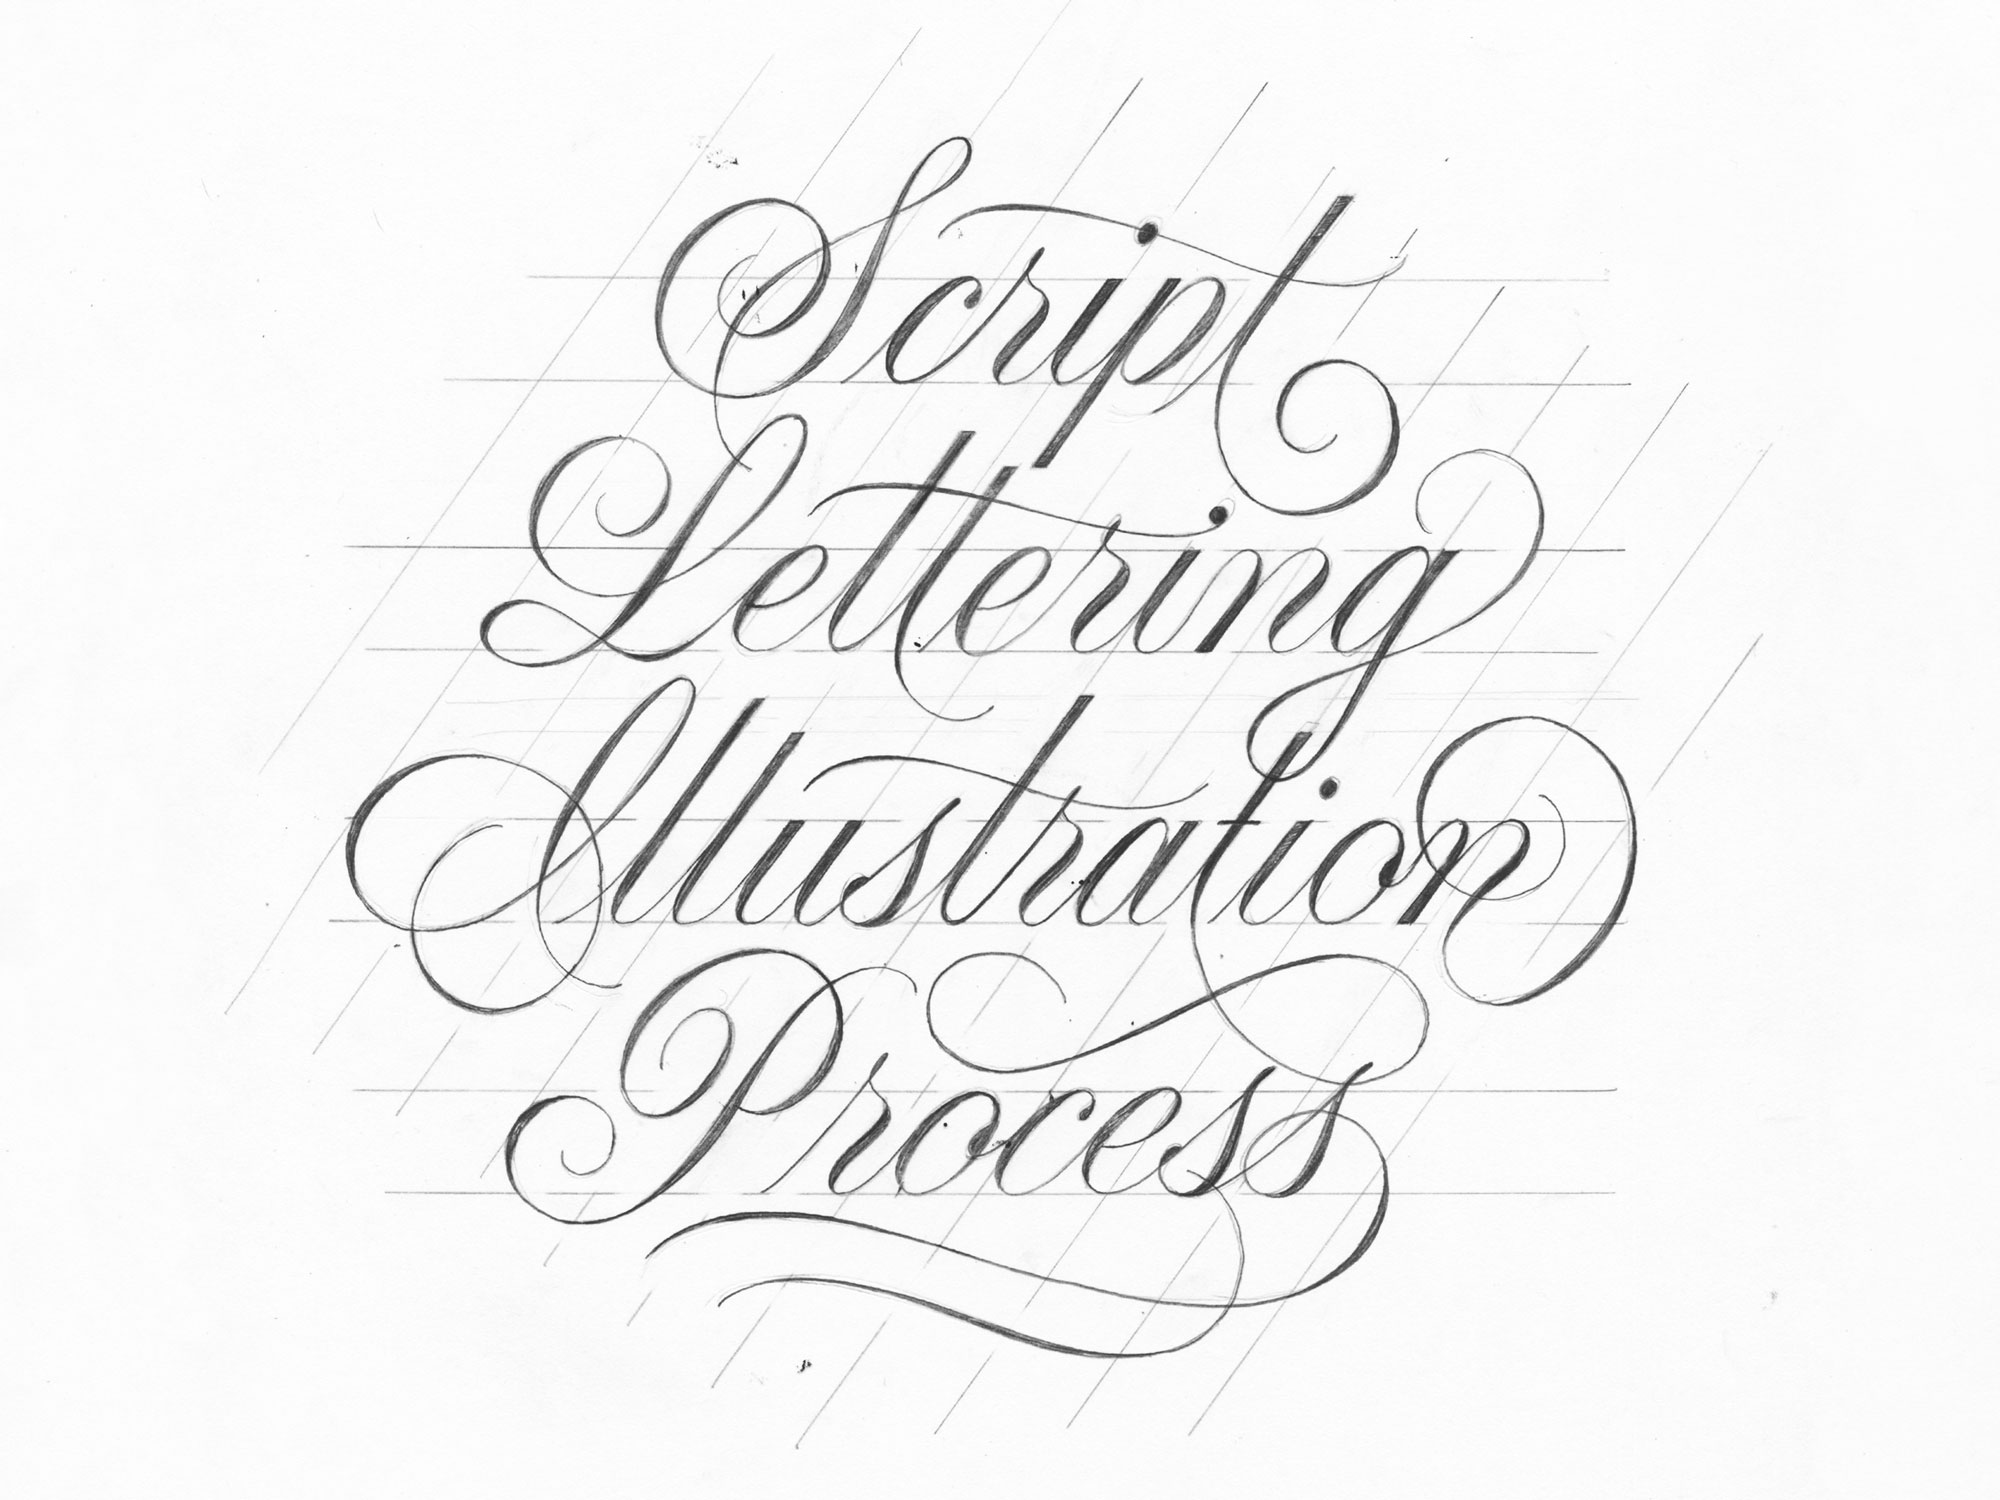 2000x1500 Script Lettering Illustration Process Pies Brand